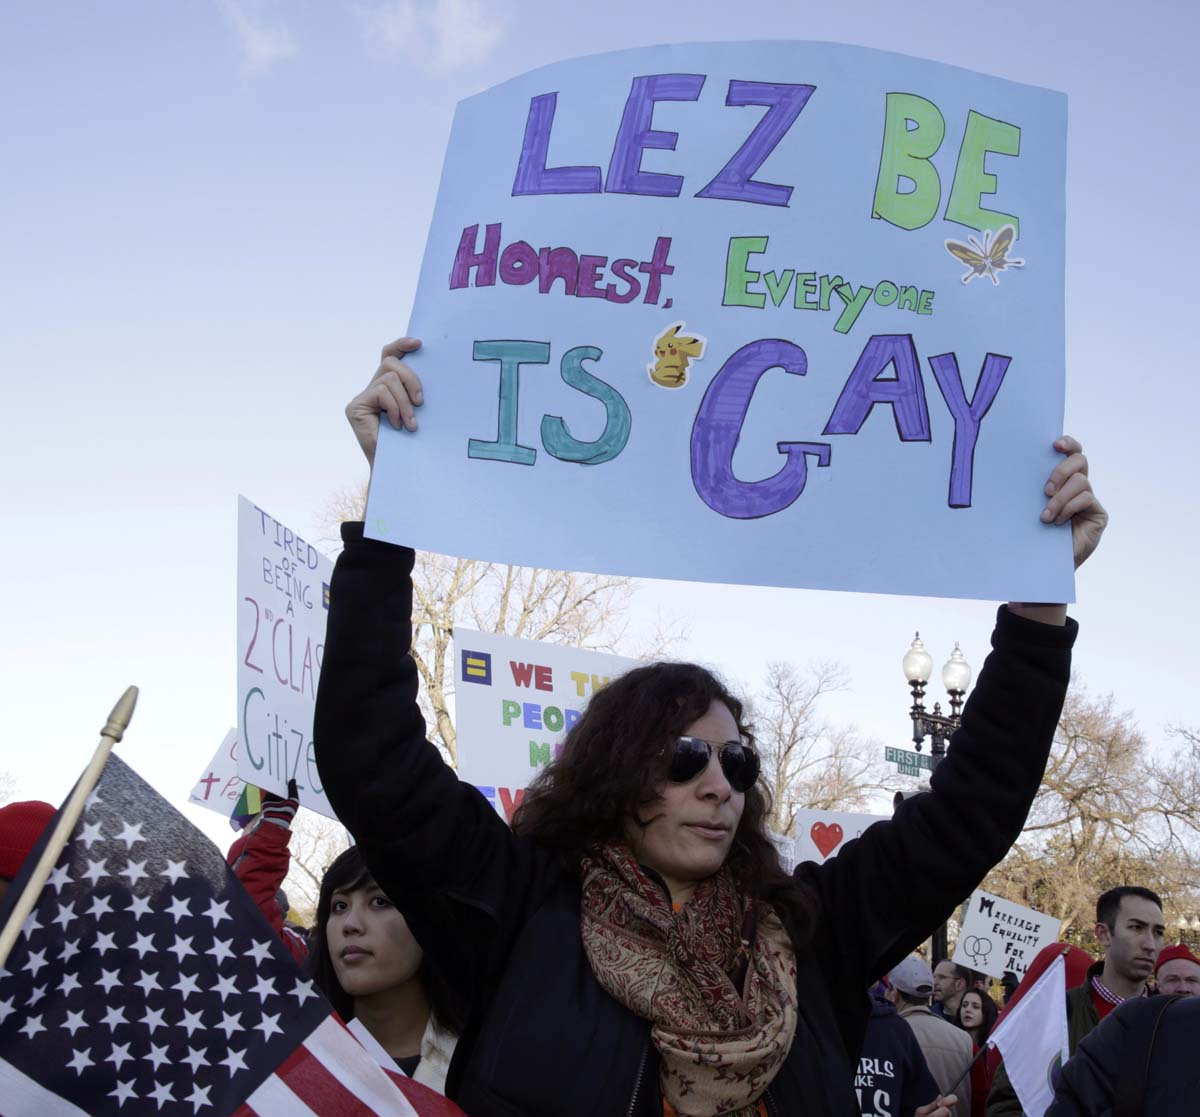 Gay marriage ban protest